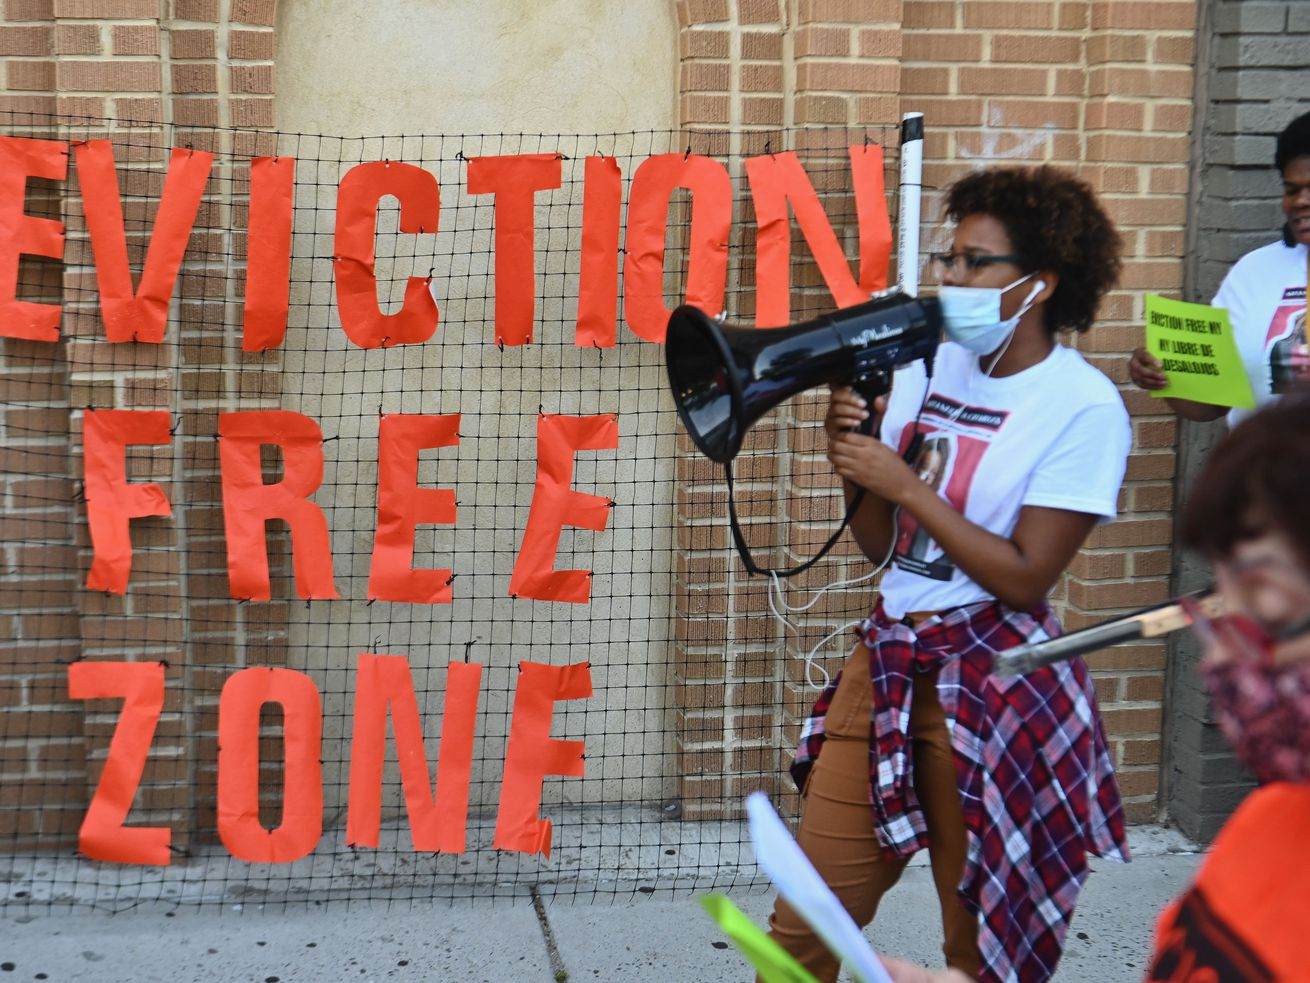 """Demonstrators hold up a neon orange banner that states, """"Eviction Free Zone."""""""